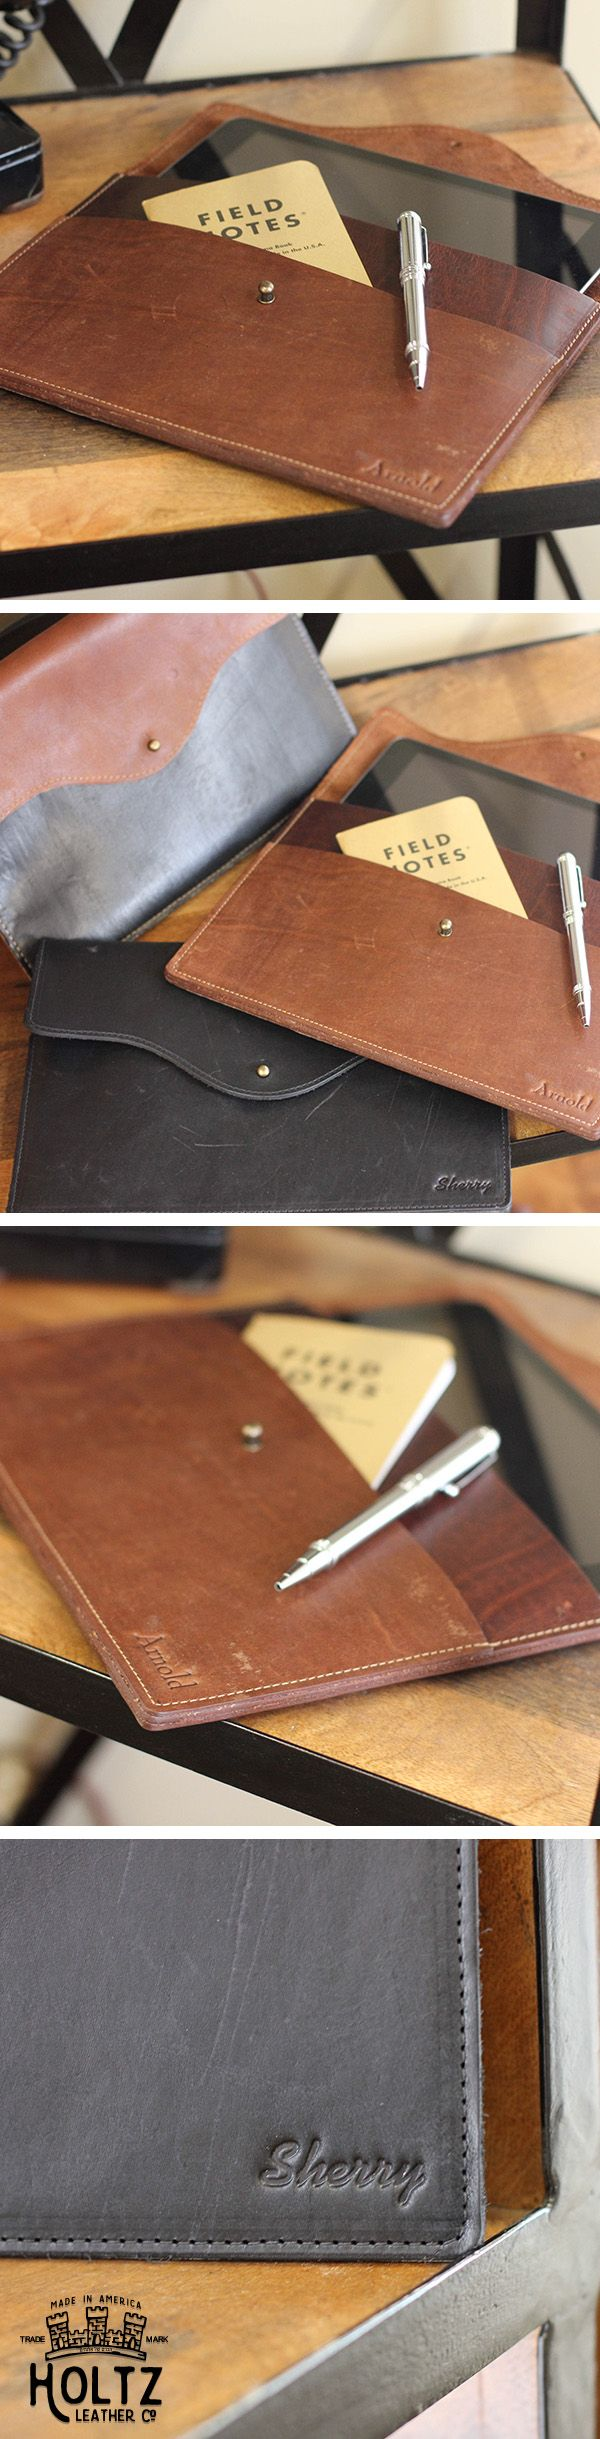 The No. 20 iPad Case is handmade right here in our shop with the finest of Full Grain American leathers. We hand pick our leather hides from a local tannery ~ for a rustic look and feel. This is a gift that will be used and loved for a lifetime! Perfect for the executive, professional, father, or dear friend in your life.